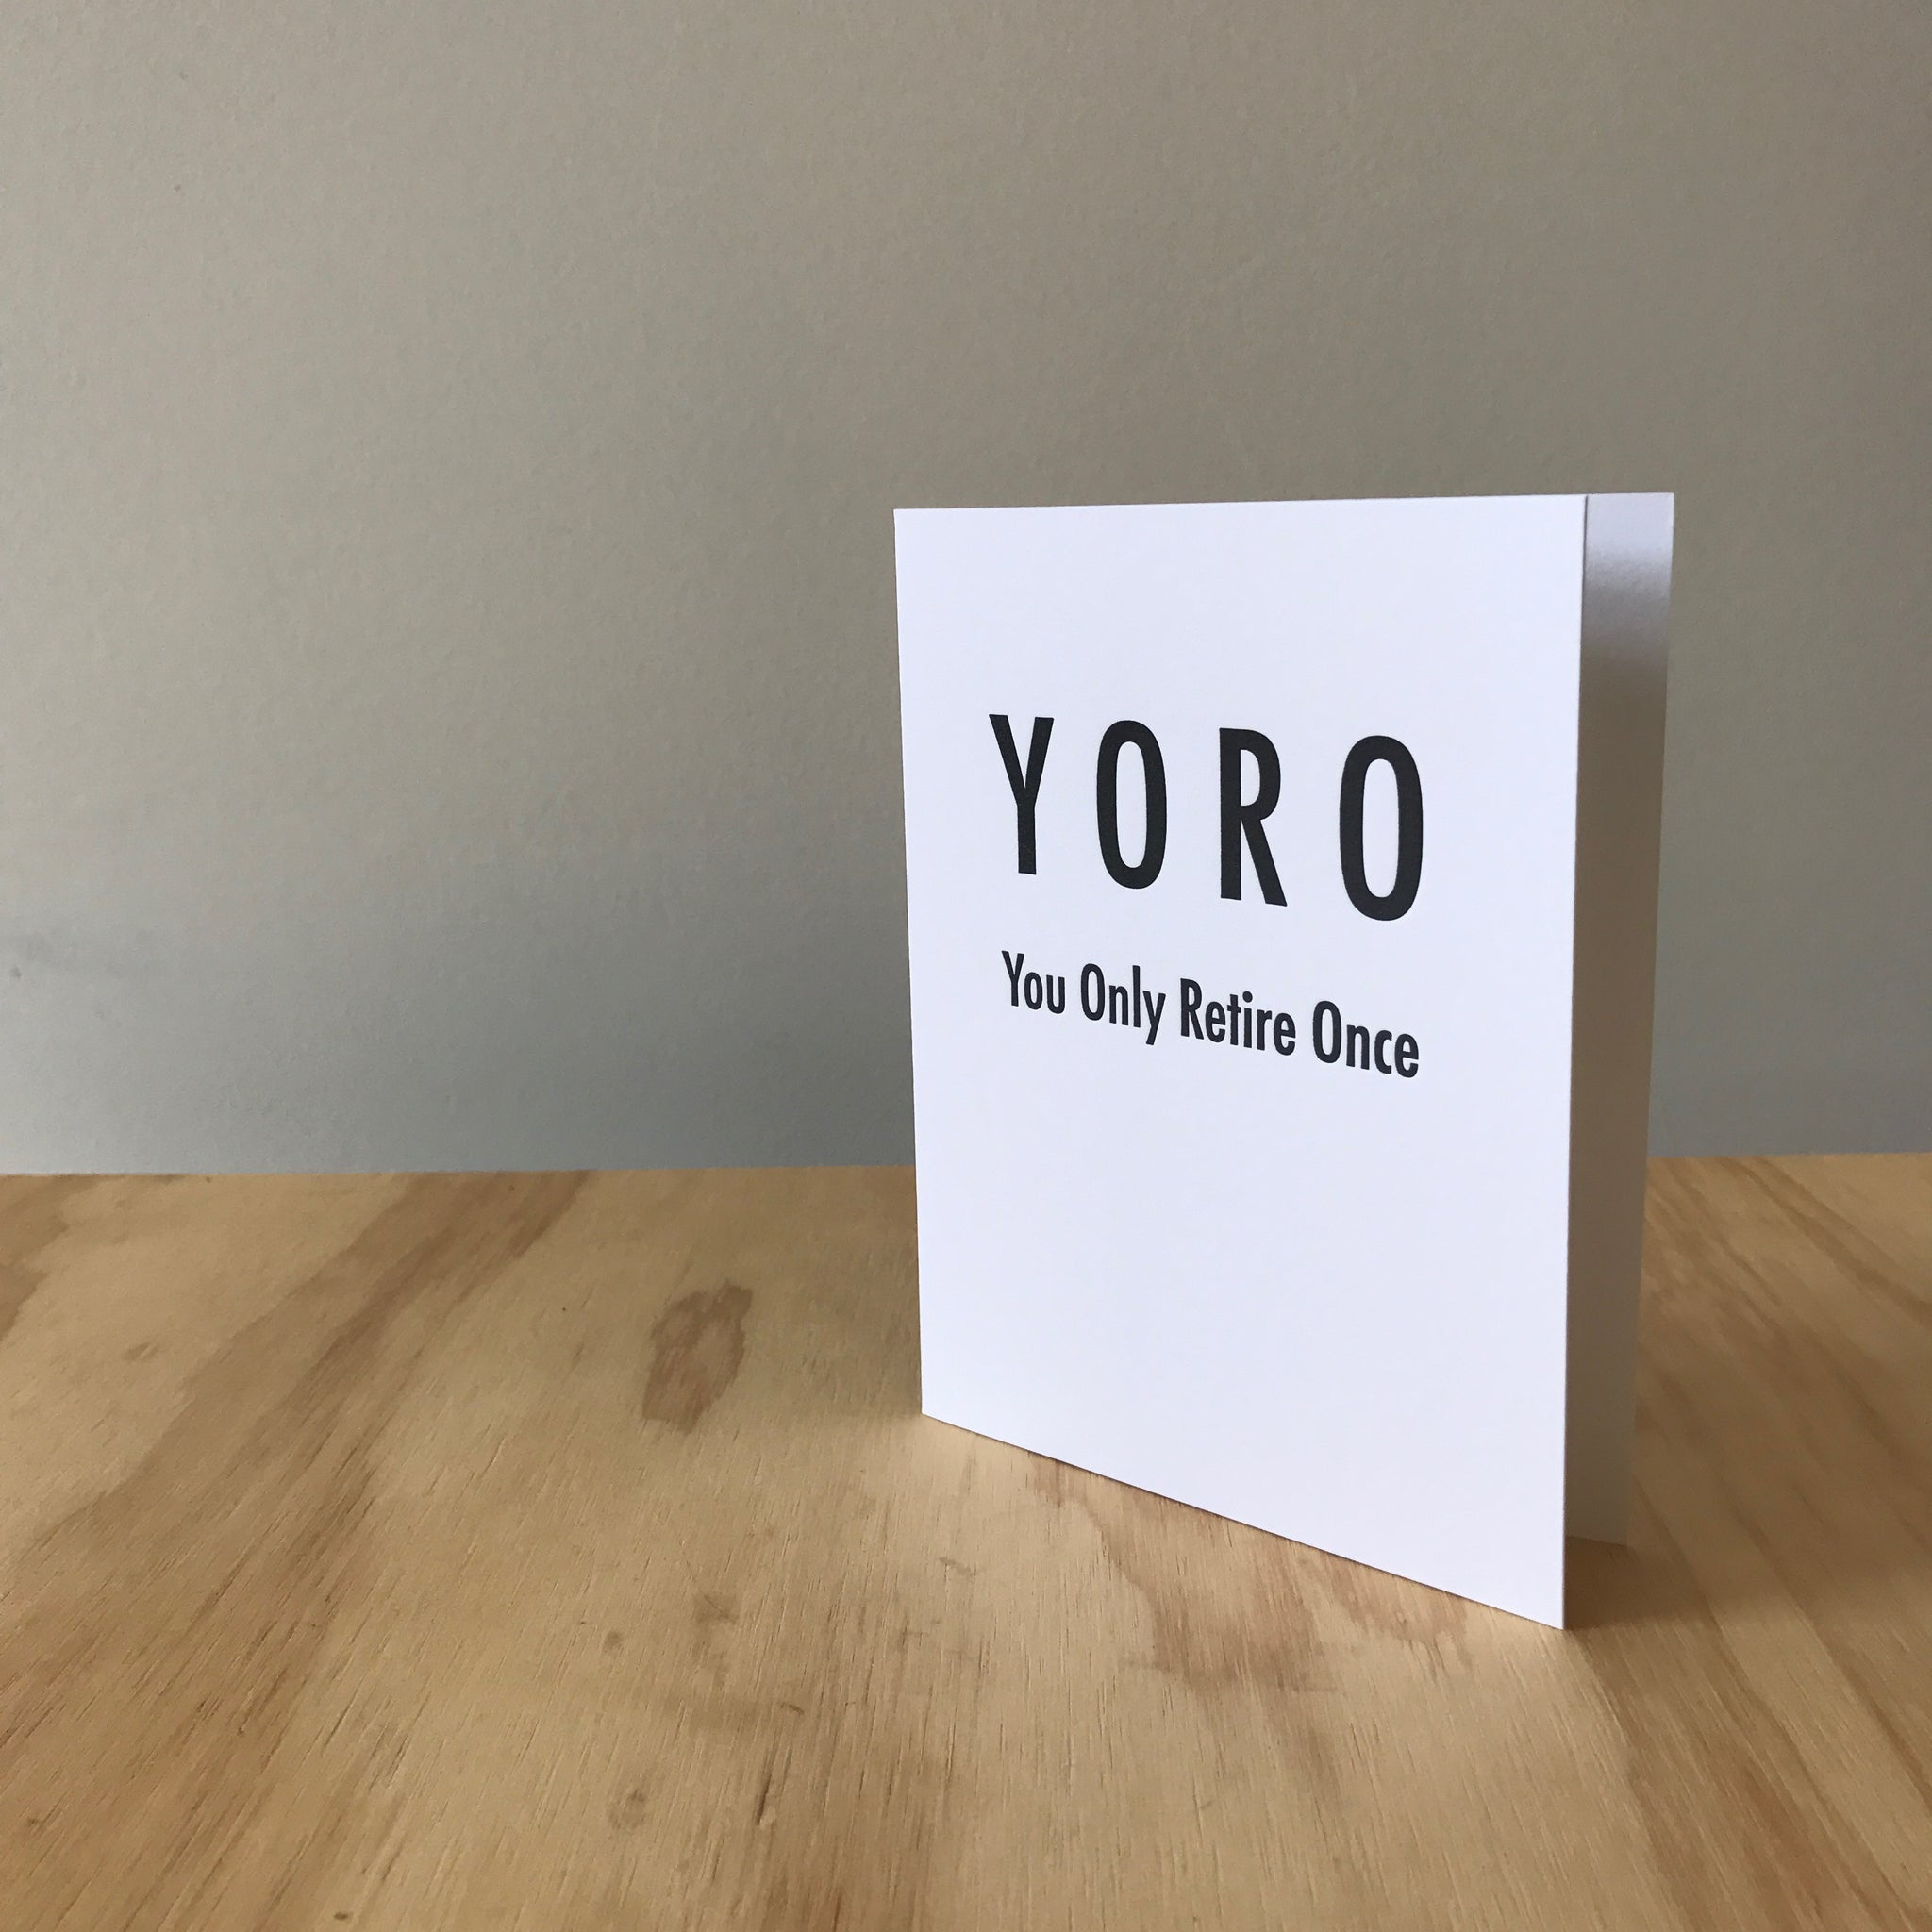 YORO Letterpress Greeting Card by Matt Butler